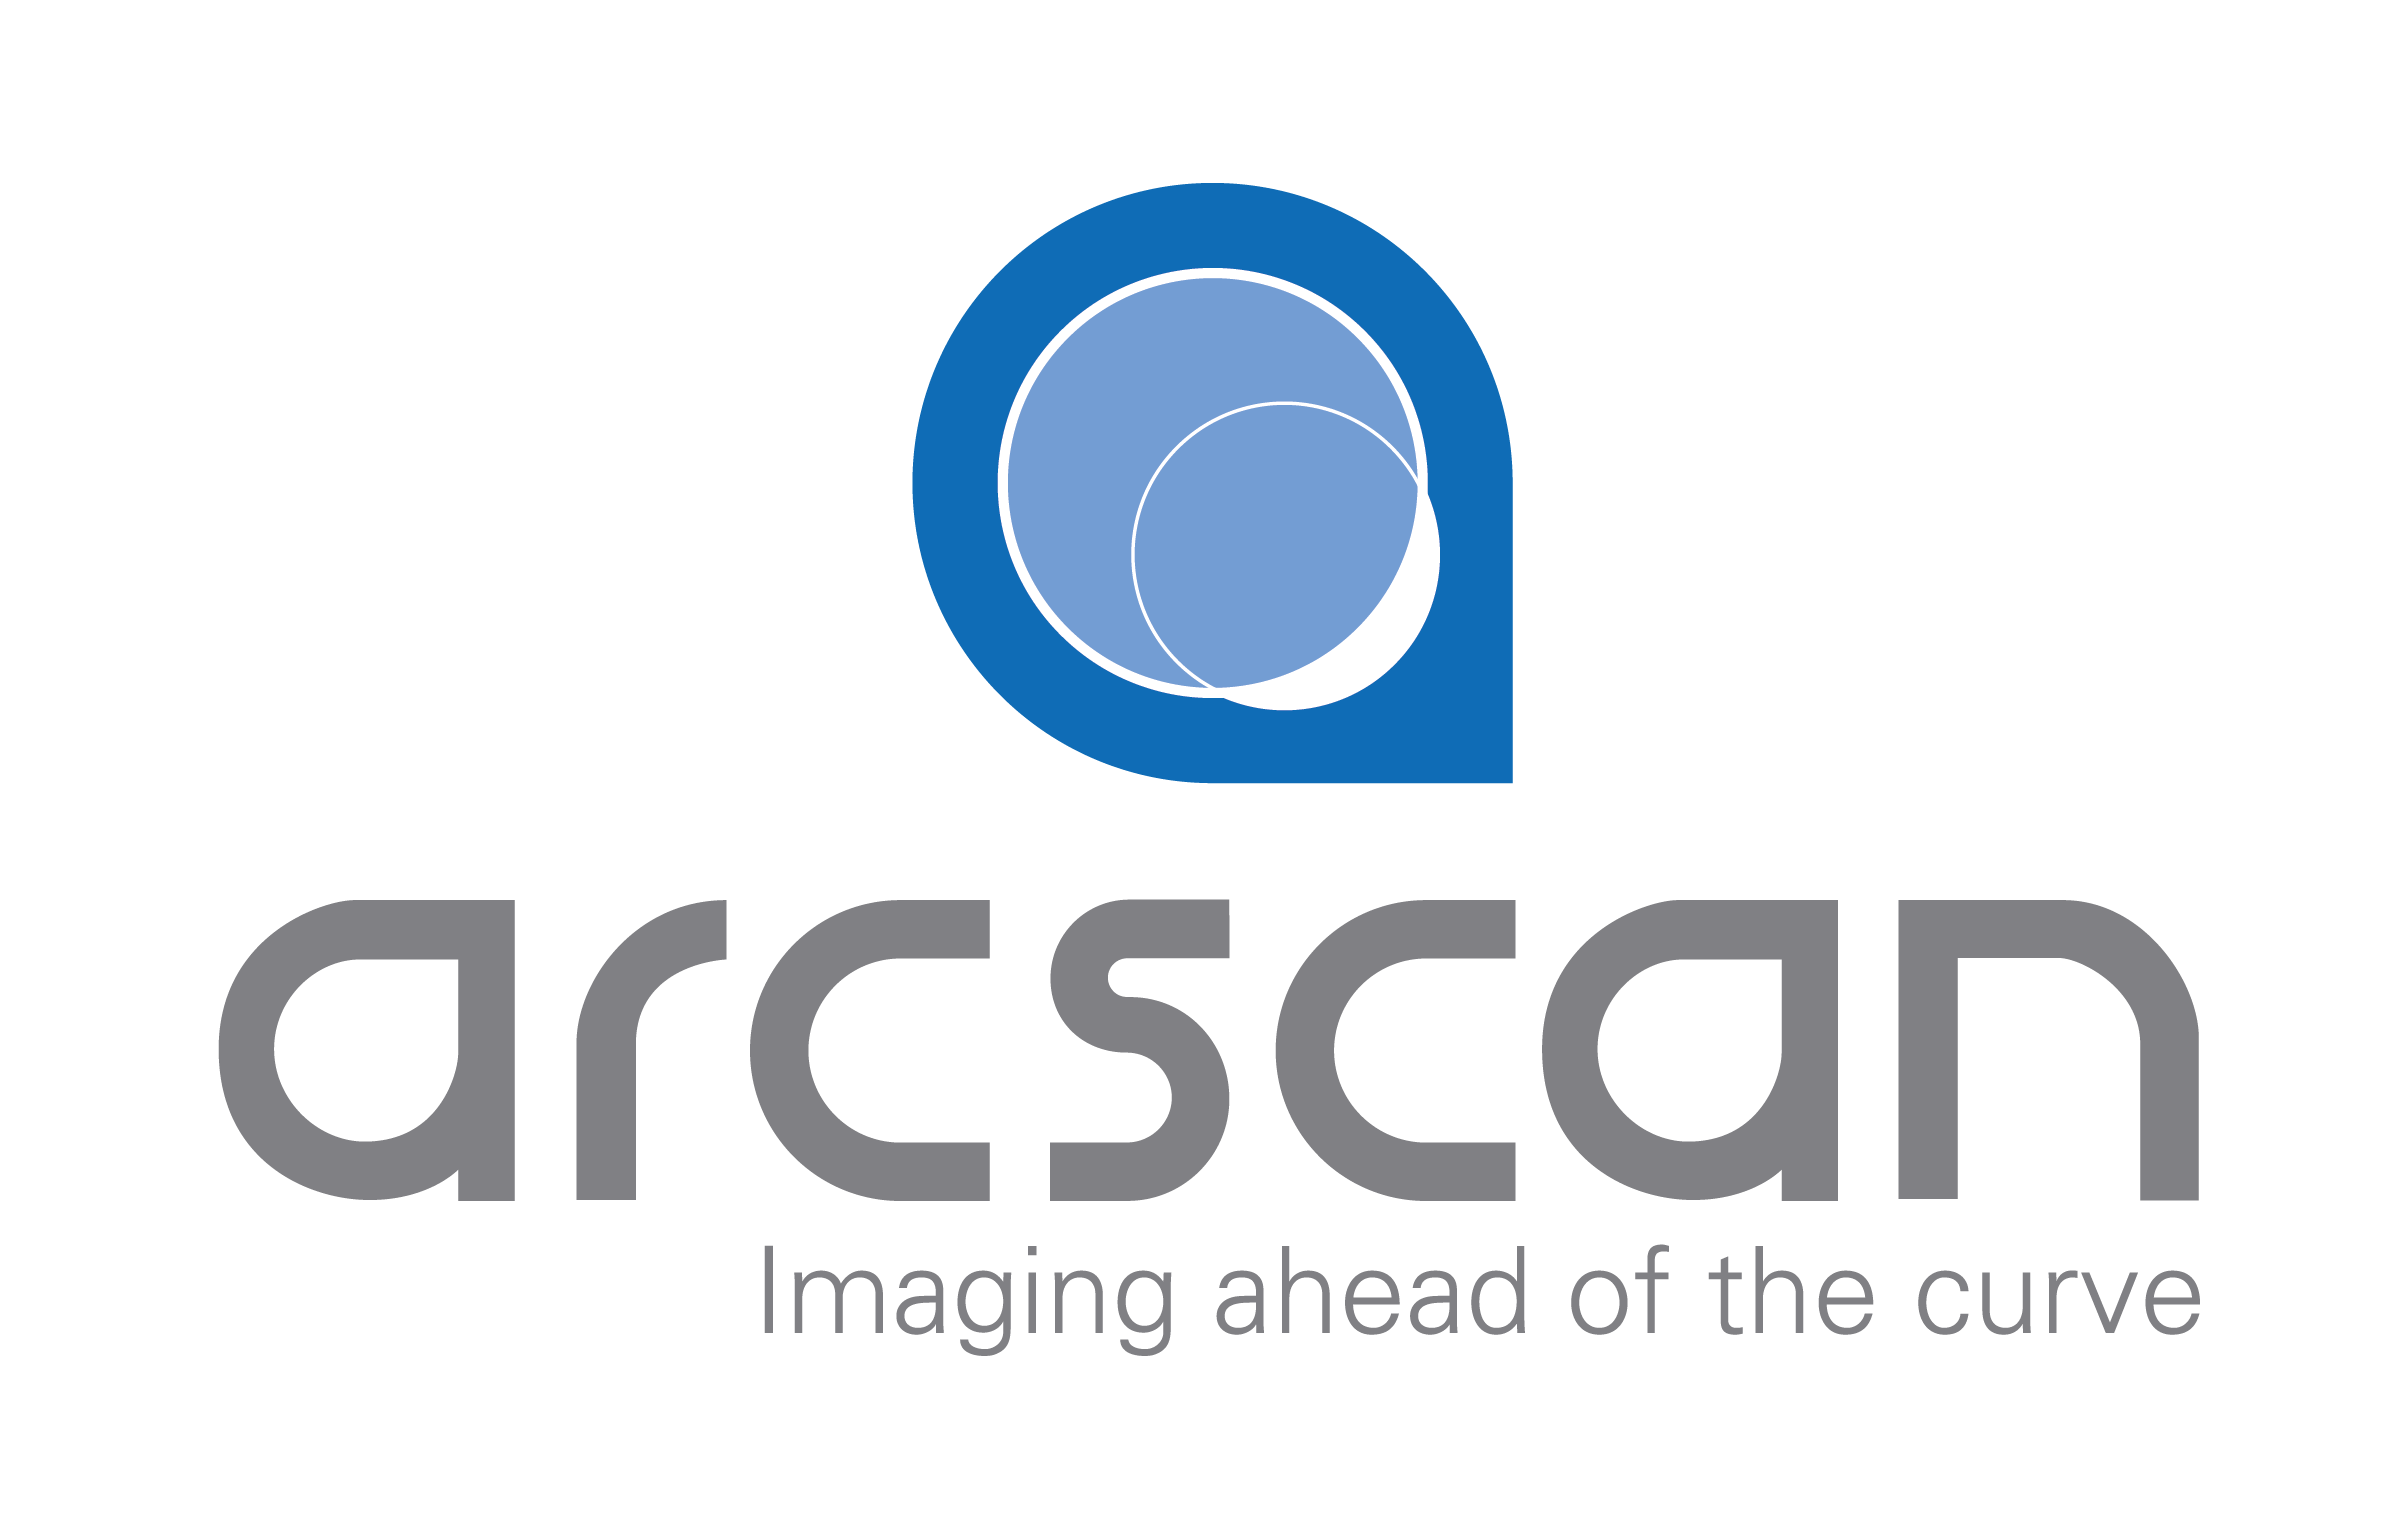 ArcScan_logo final-01.png